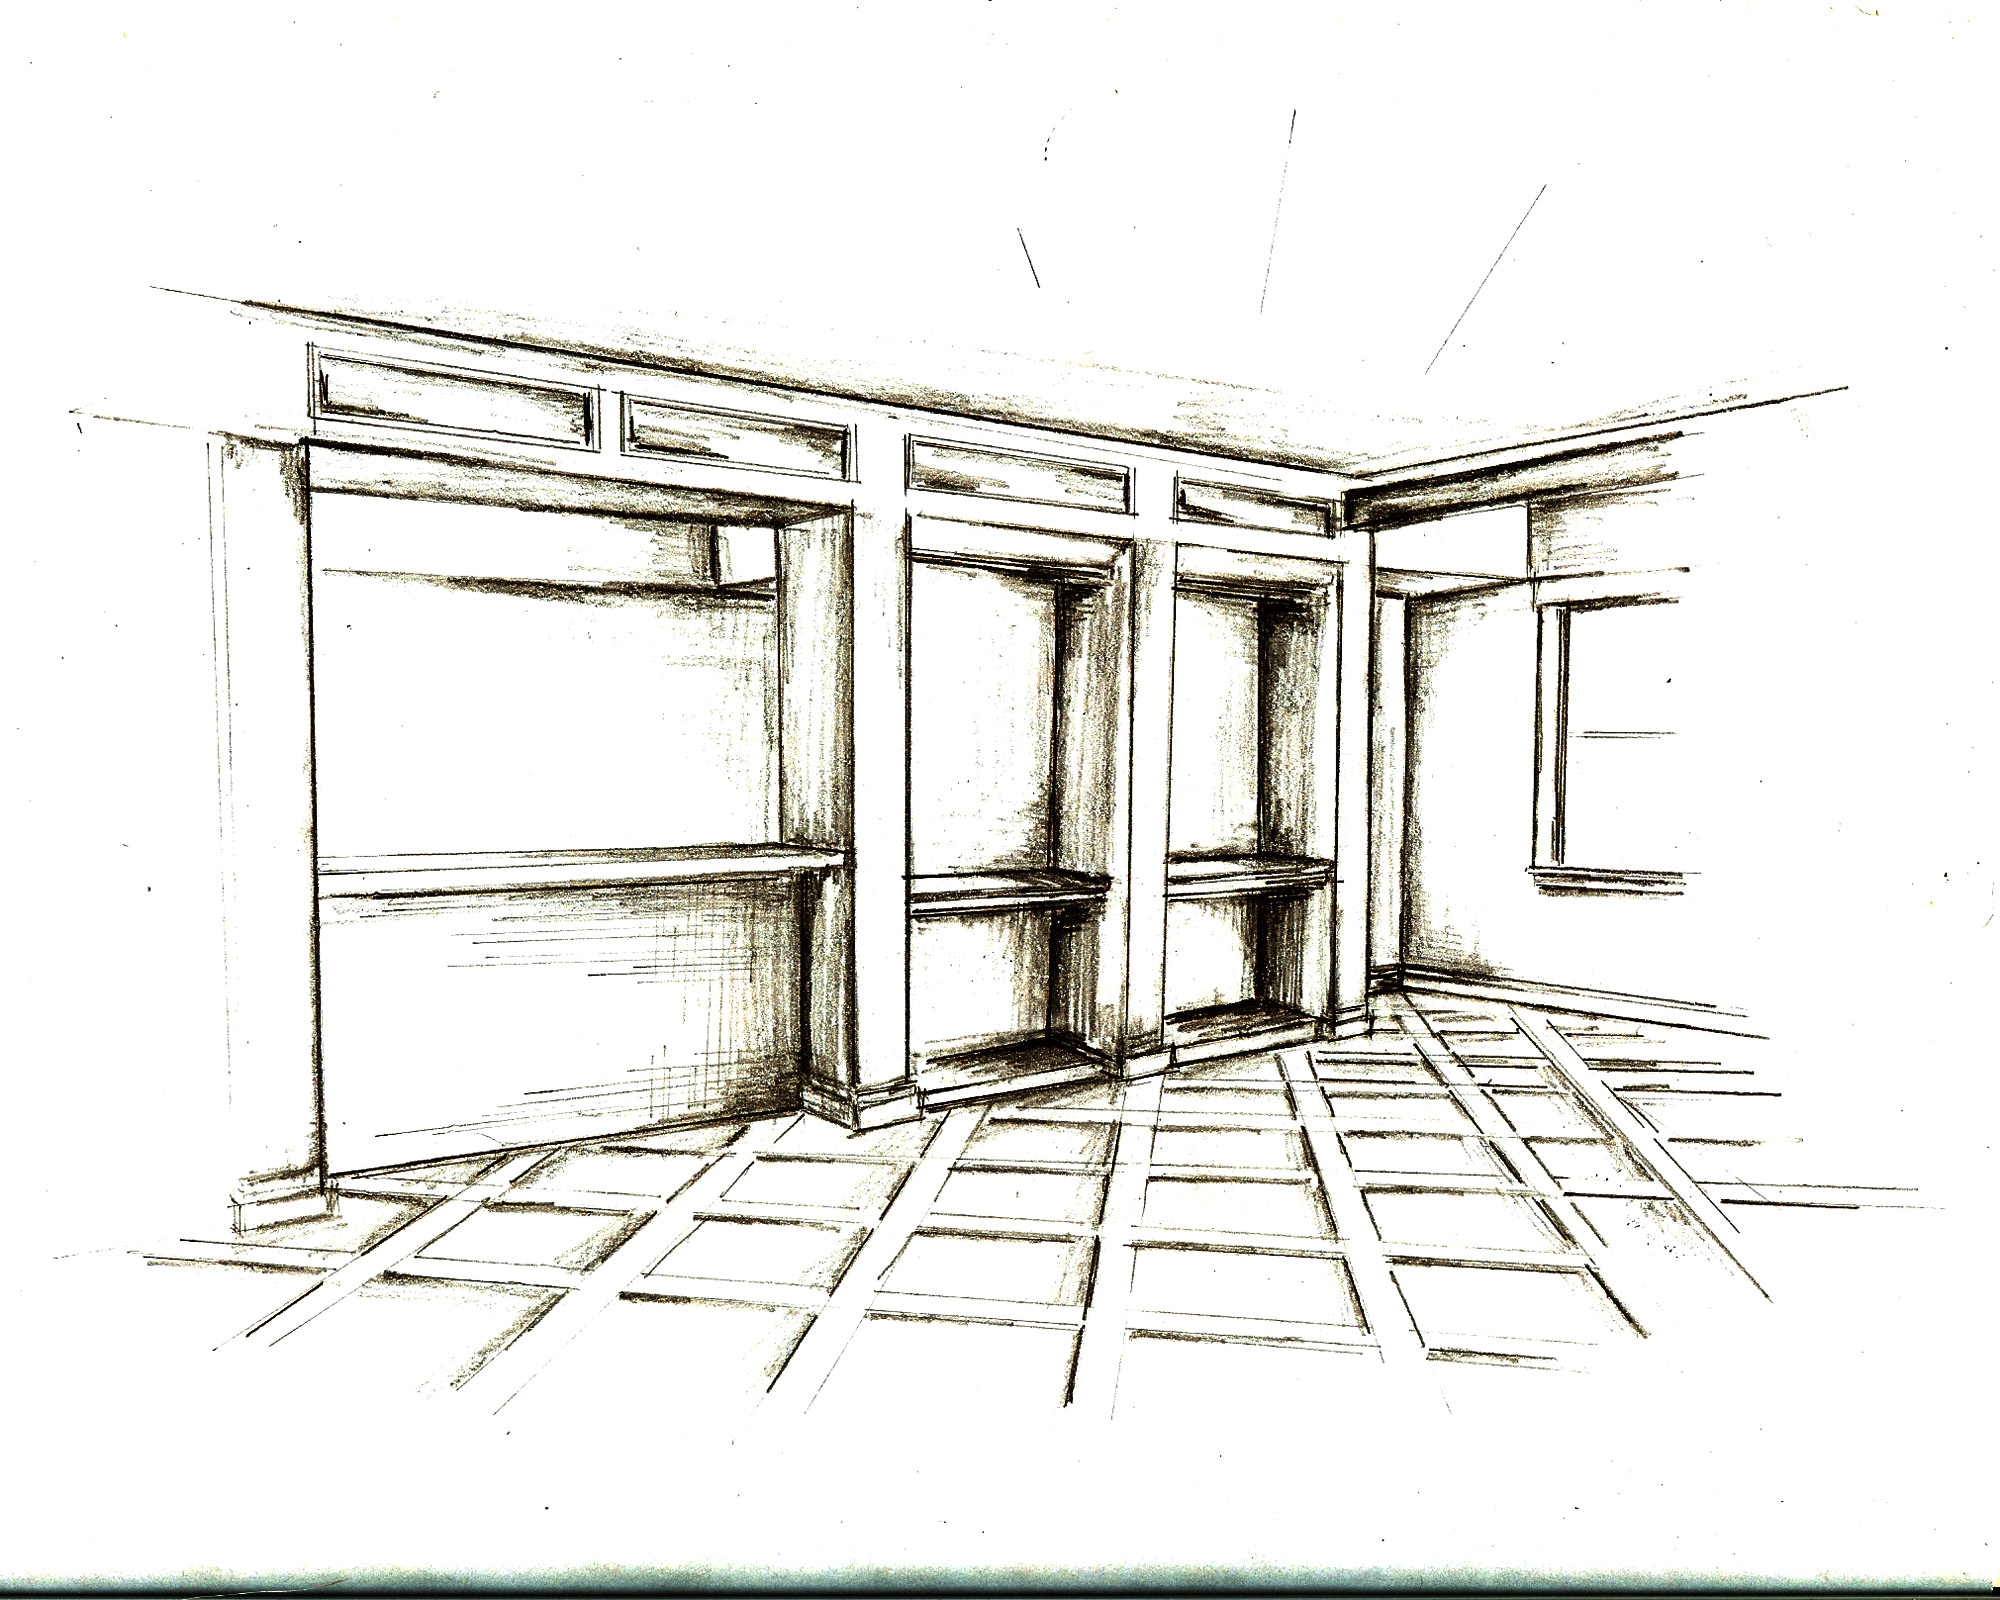 Tsunami Sketch Room Interior Design Sketch, Build Your Own